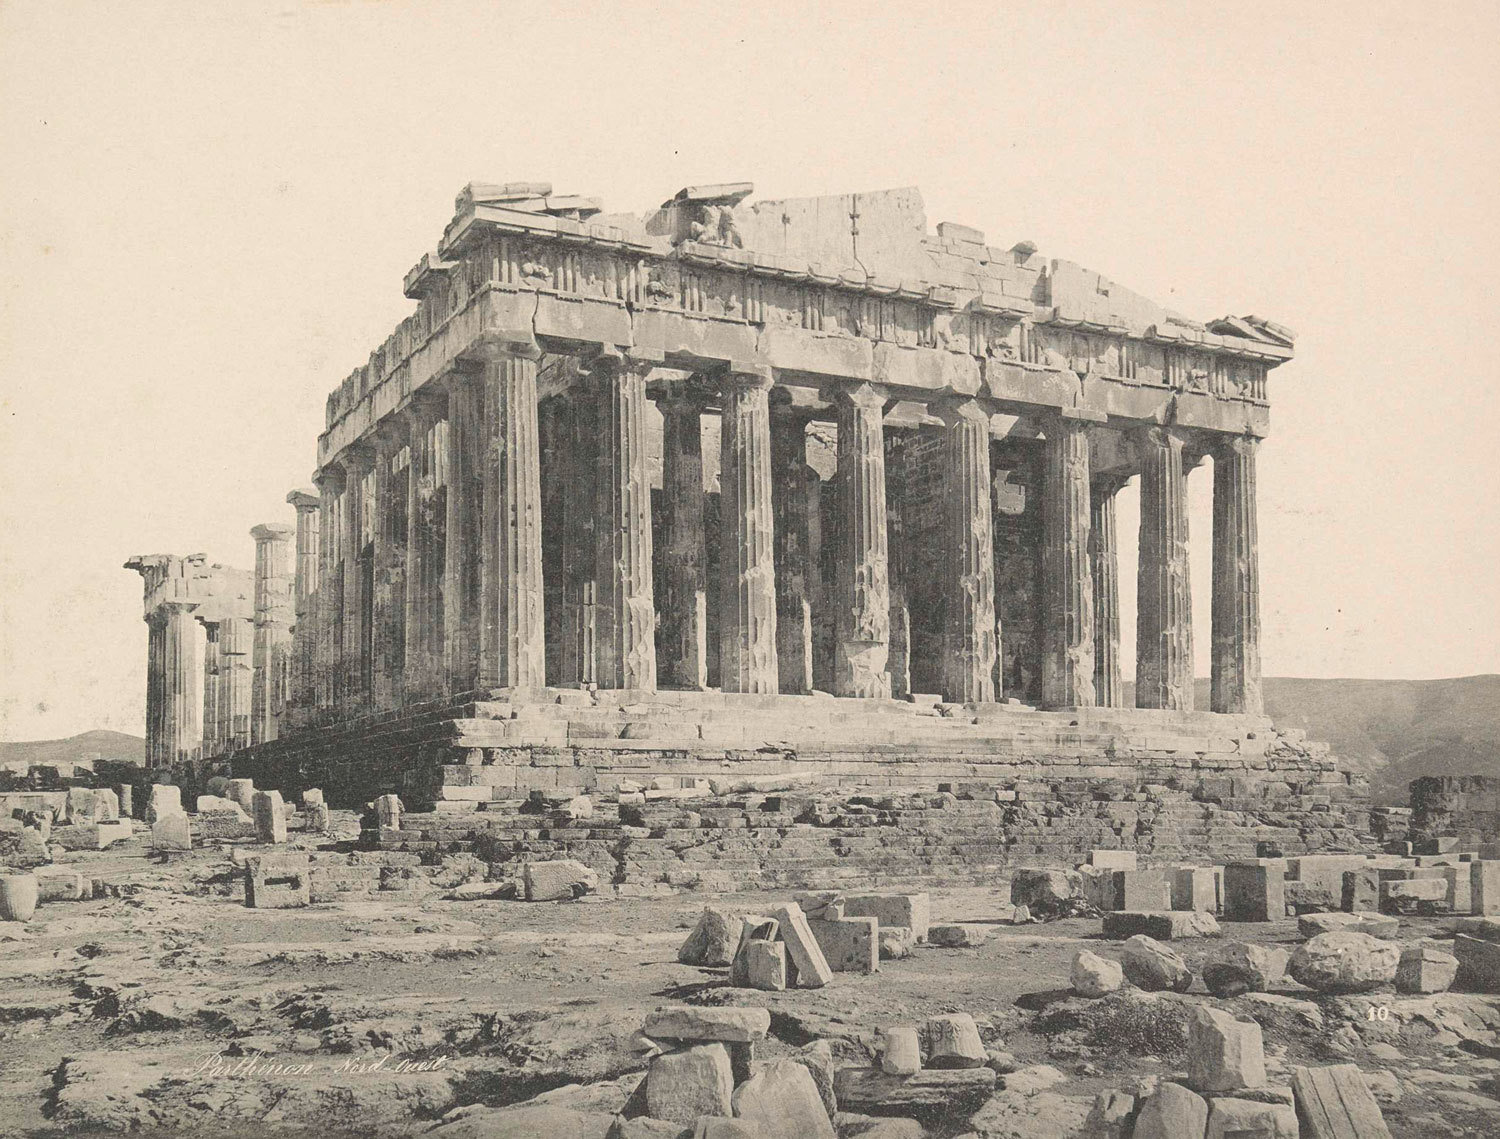 View of the Parthenon, Athens, ca. 1895-1905, anonymous, Rijksmuseum, Public Domain Mark